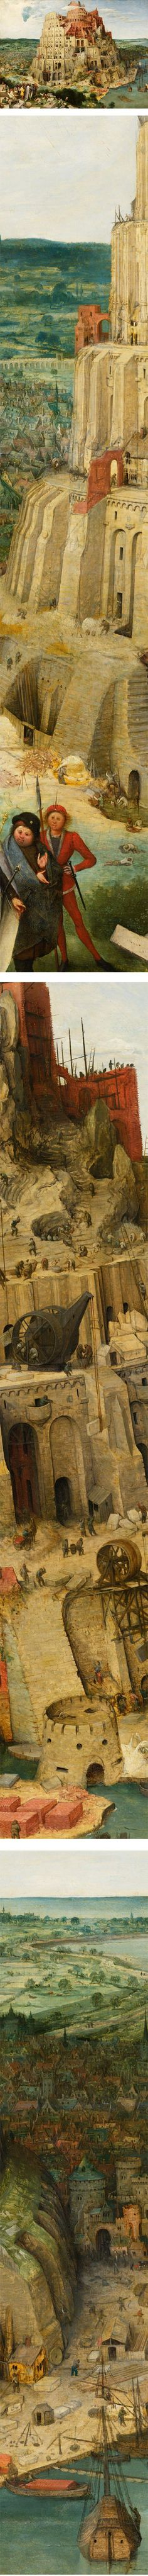 Tower of Babel, by artist Pieter Bruegel the Elder.  Art appreciation for history